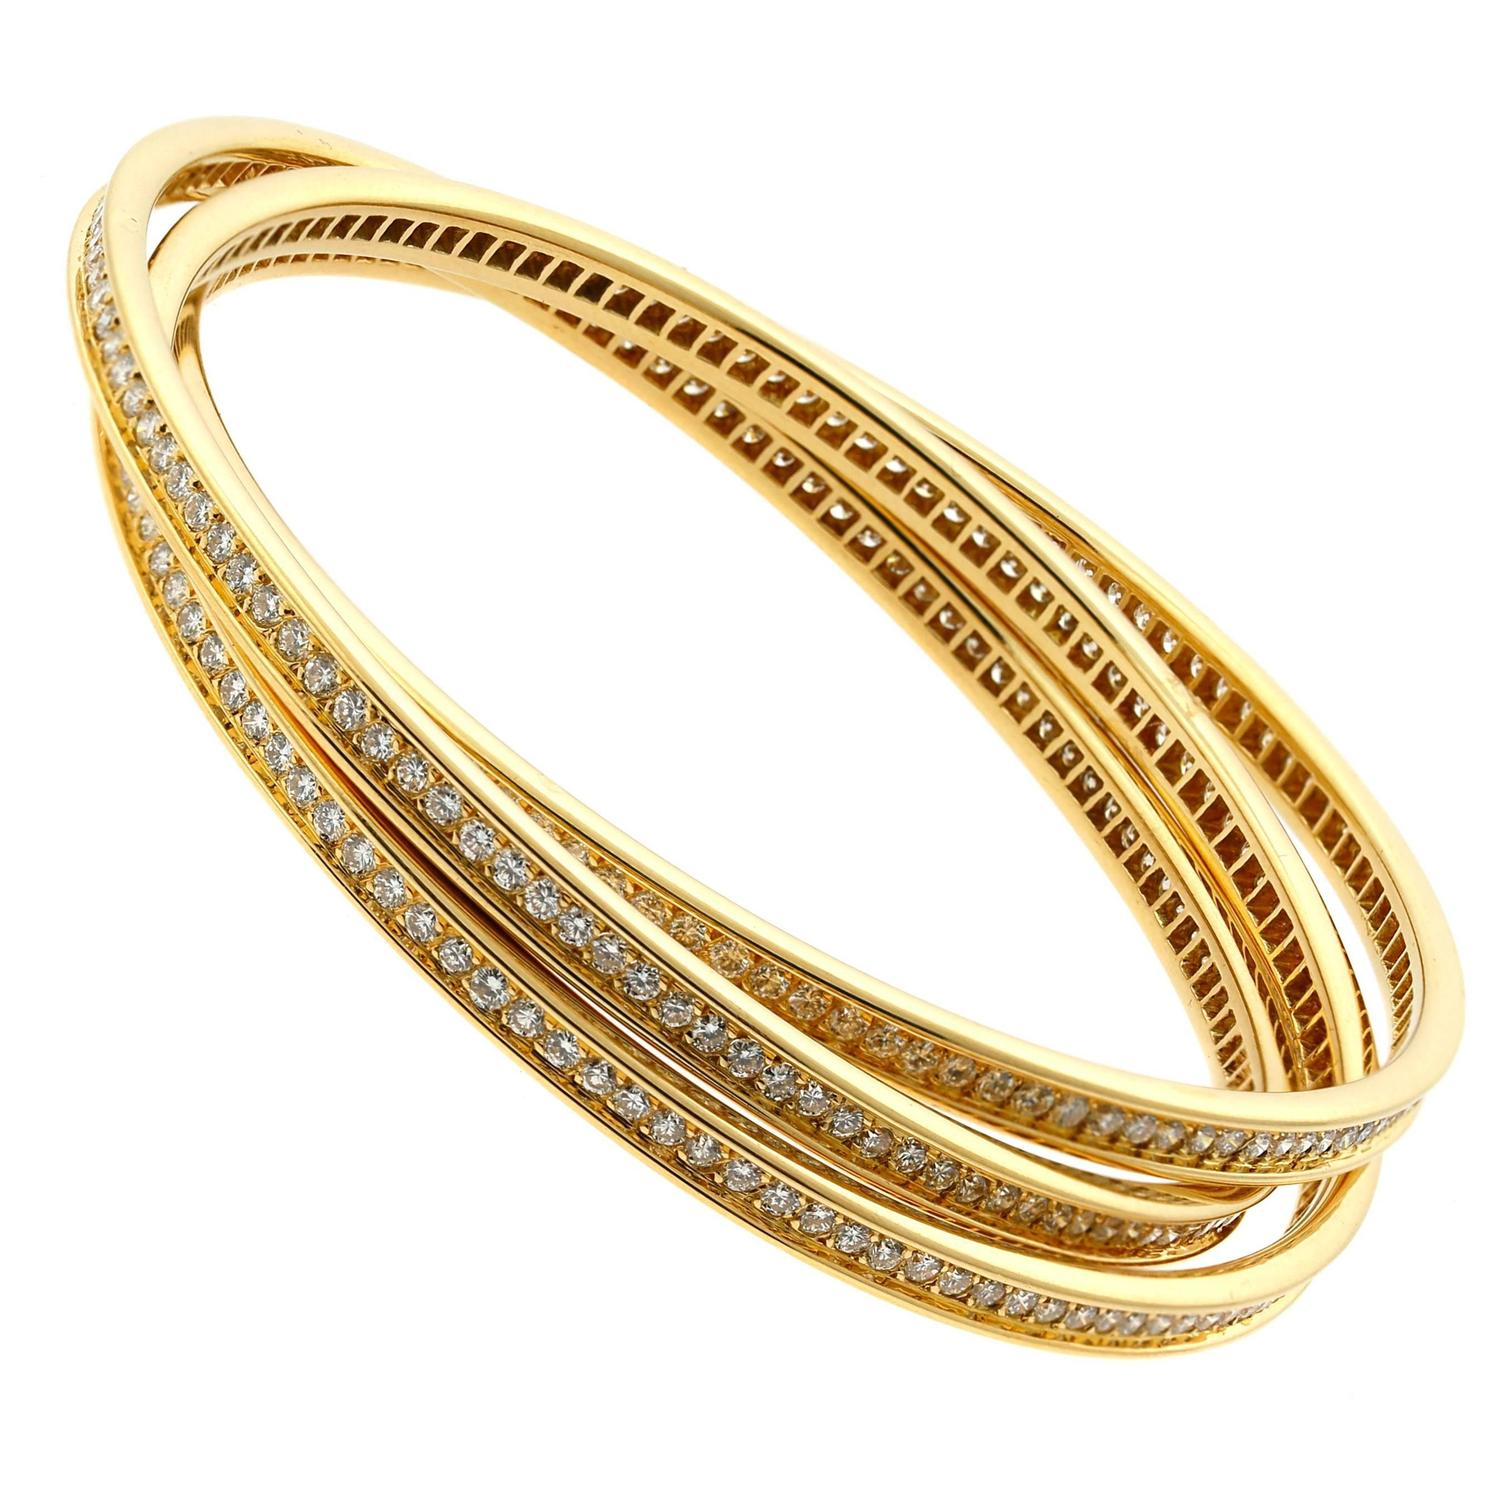 camellia sale id bracelet j chanel diamond jewelry gold first z for at bangle bracelets women org bangles